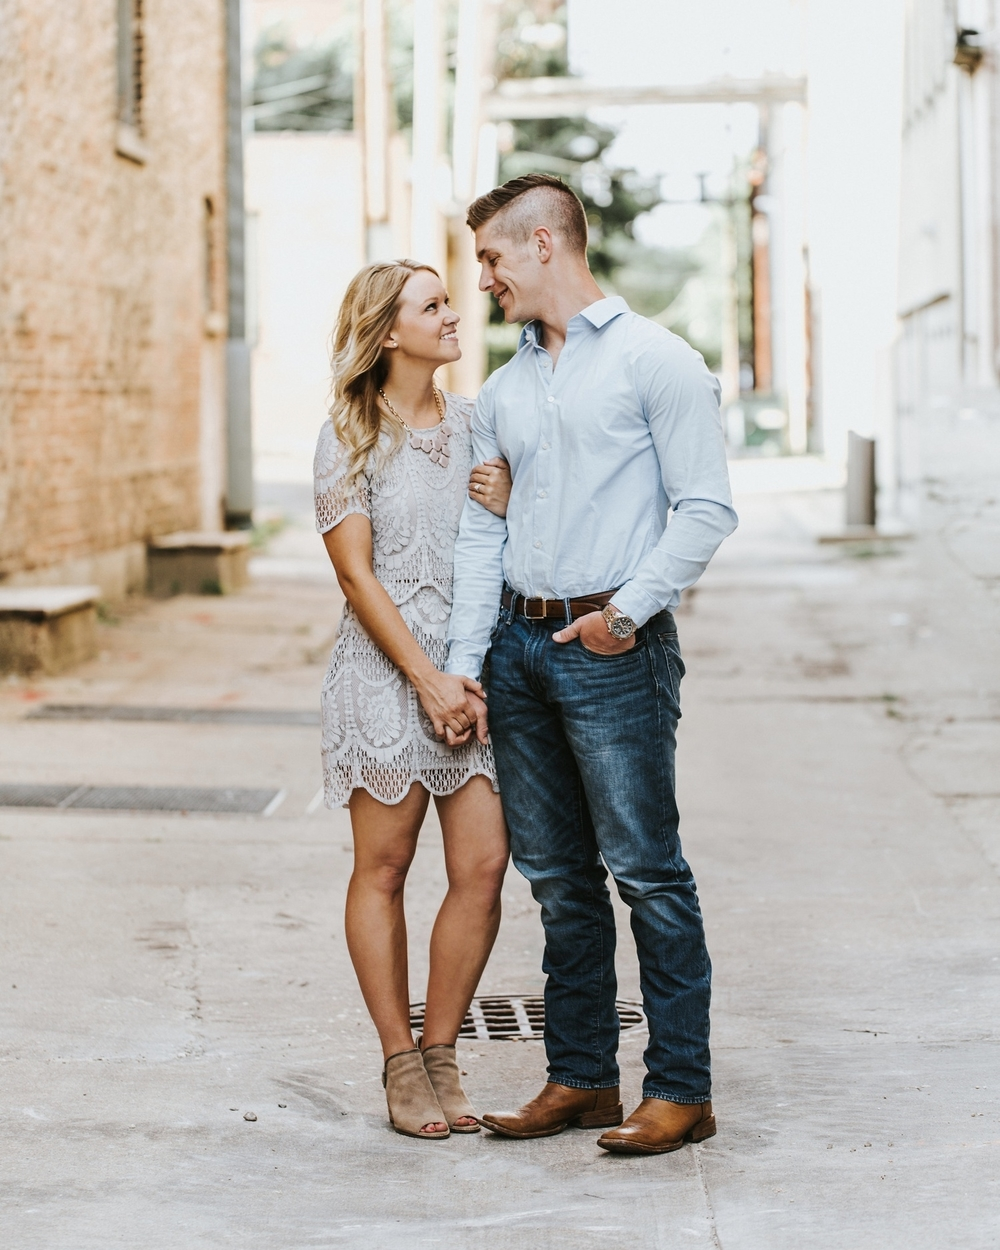 Rockford Illinois Engagement Session _ Nicole Lender Weddings_0016.jpg